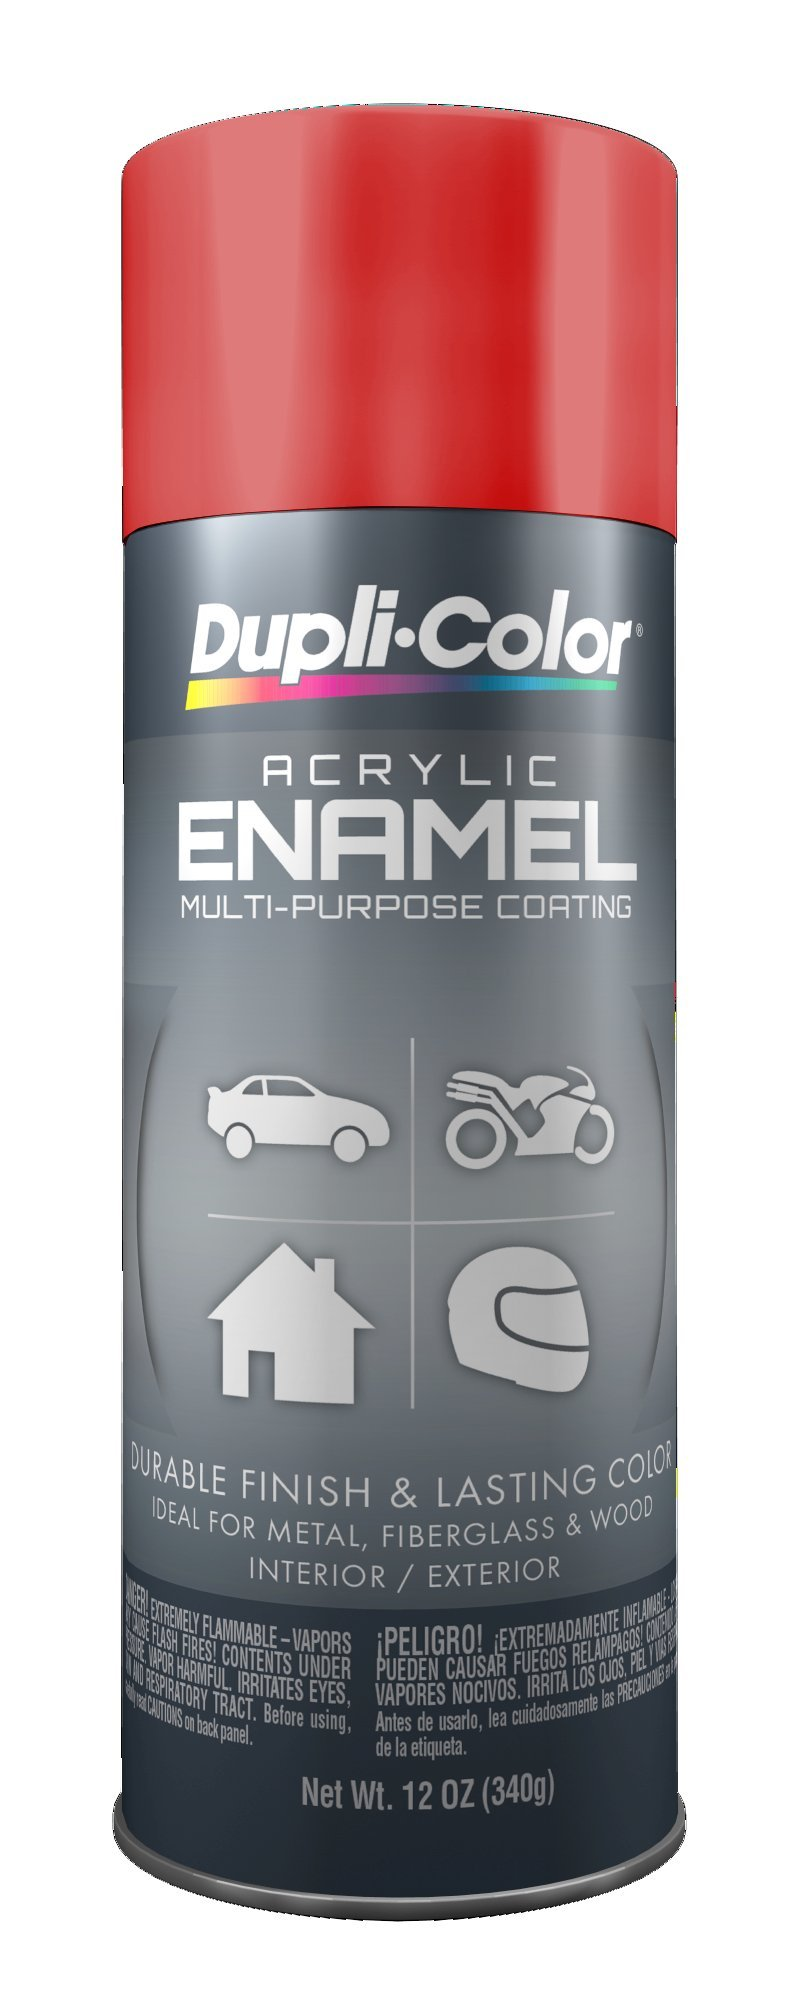 Dupli-Color EPAE10700 Red Spray Paint, 12. Fluid_Ounces by Dupli-Color